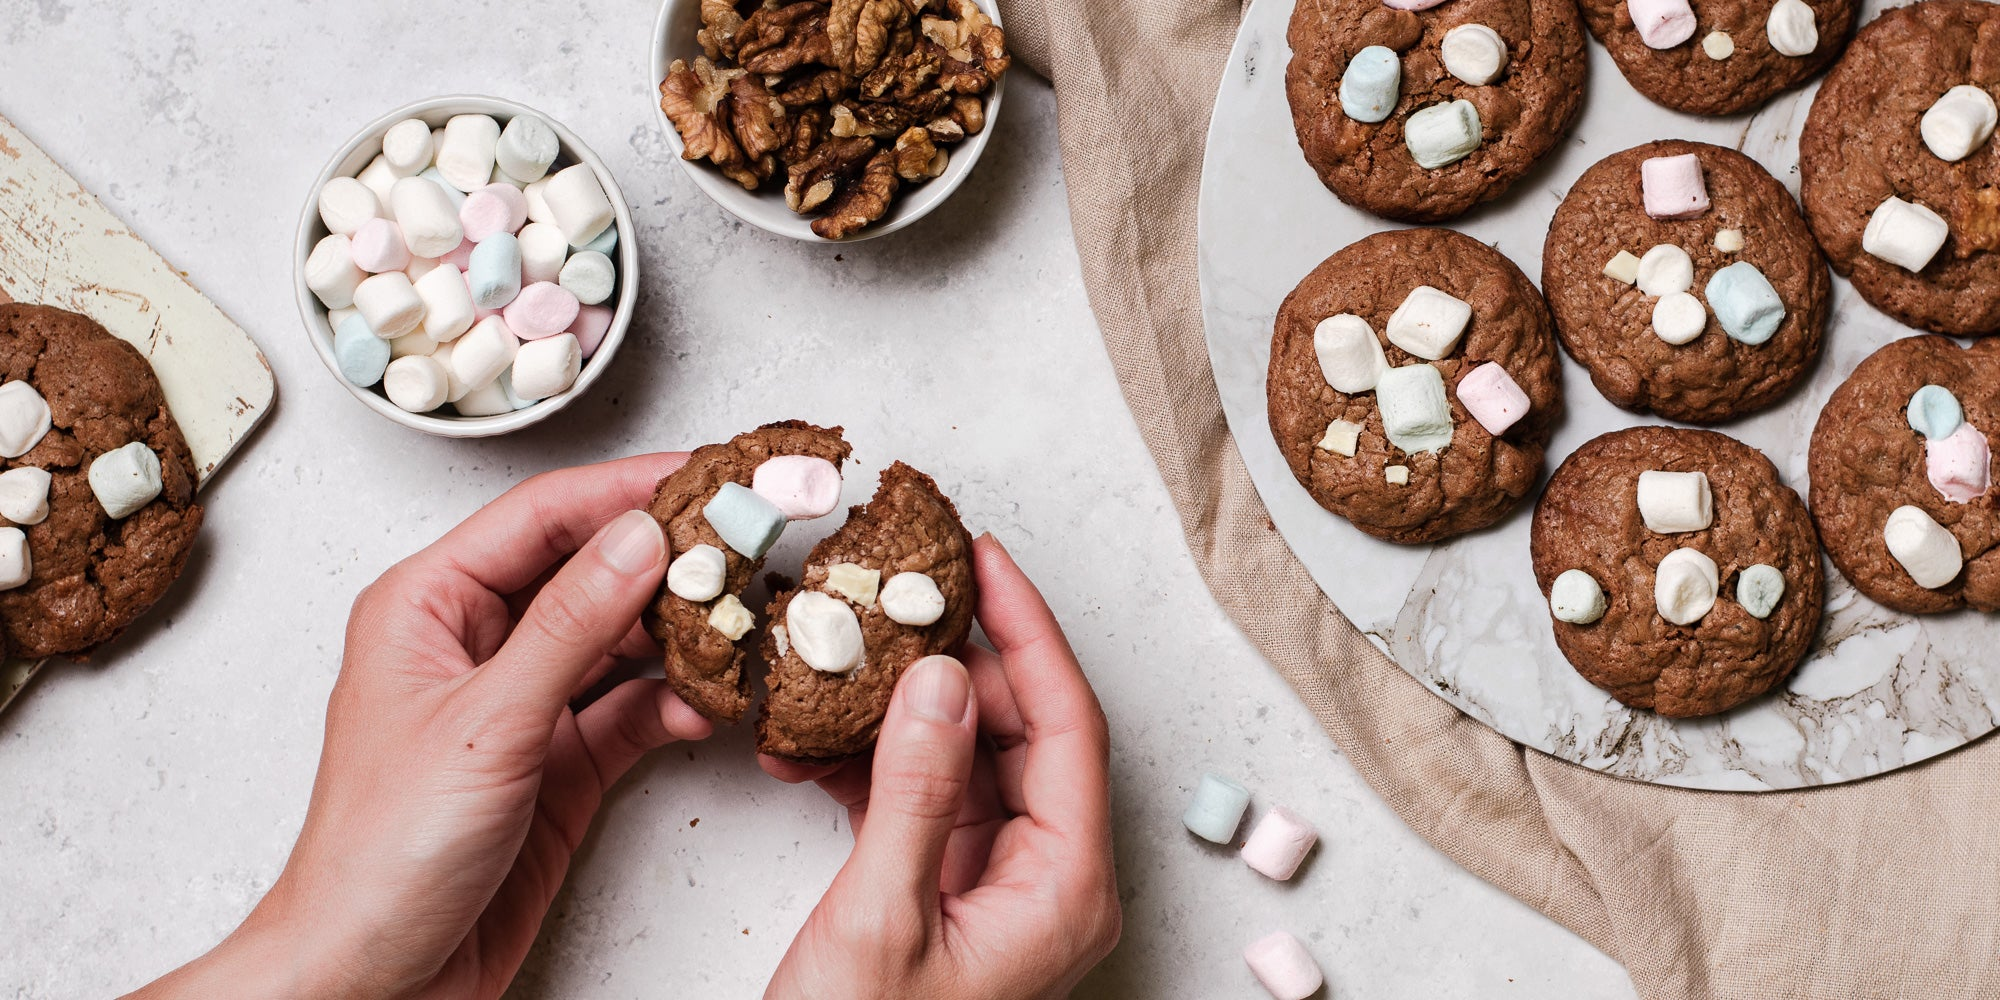 Rocky Road Cookies with hands opening a cookie to show the gooey insides